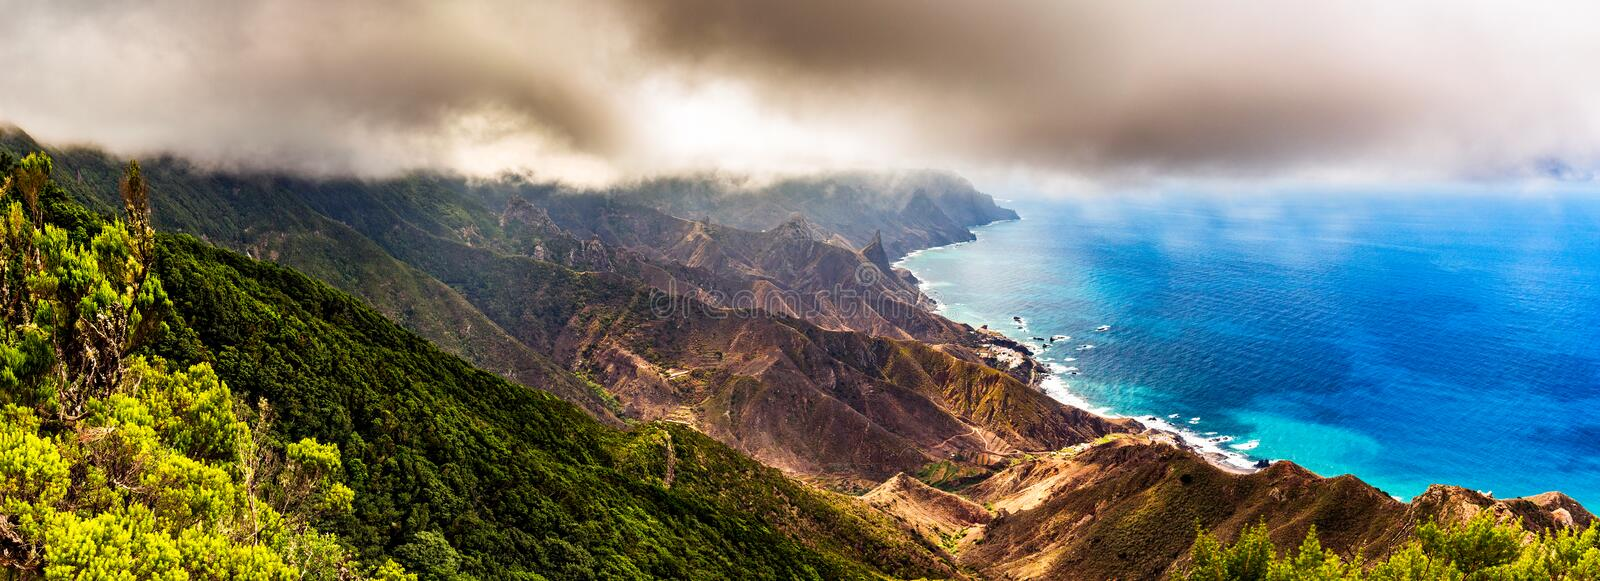 Panoramic landscape in Anaga mountains, Tenerife Canary Islands, Spain stock photos